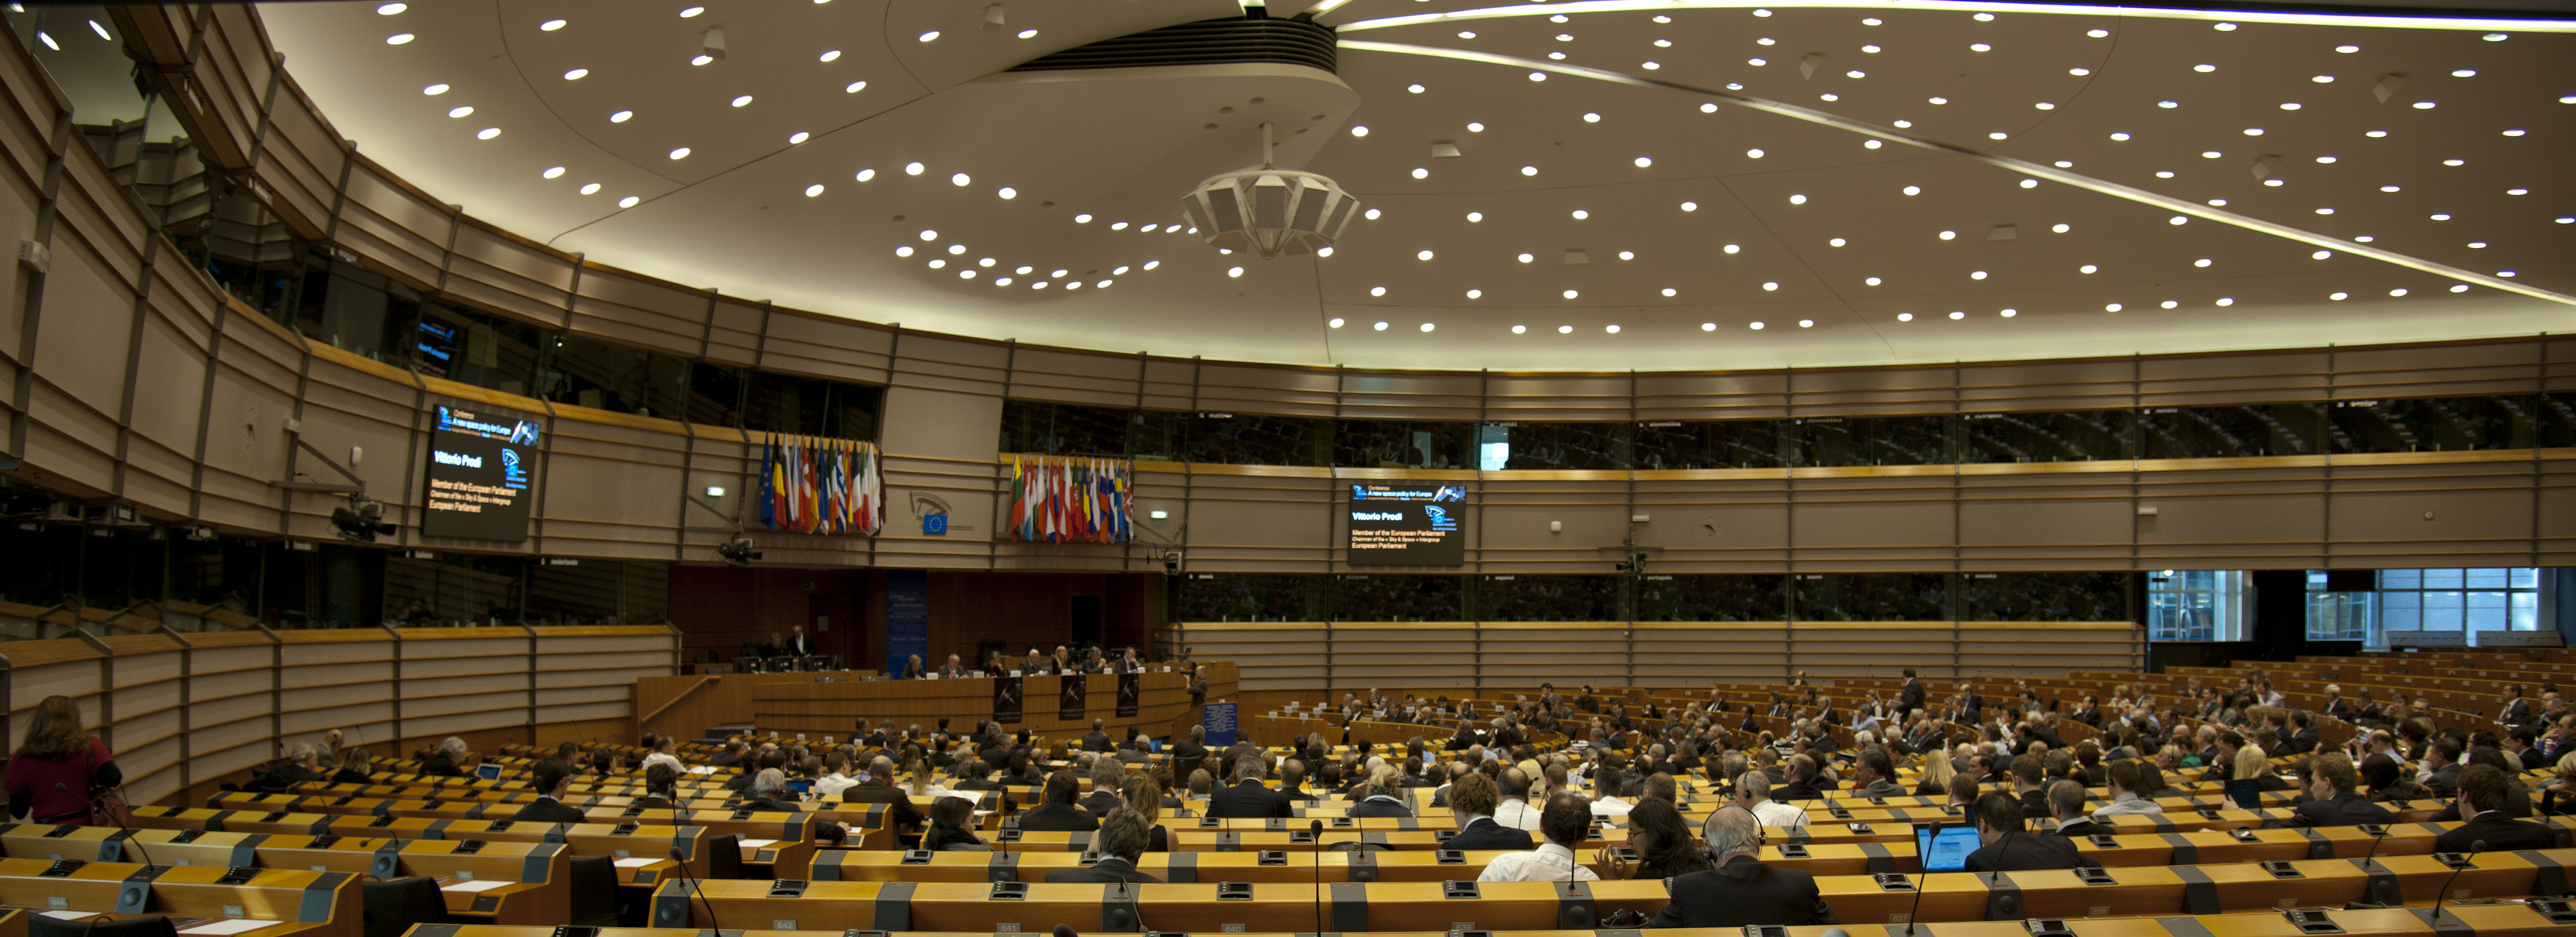 Space in Images - 2010 - 10 - European Parliament ...